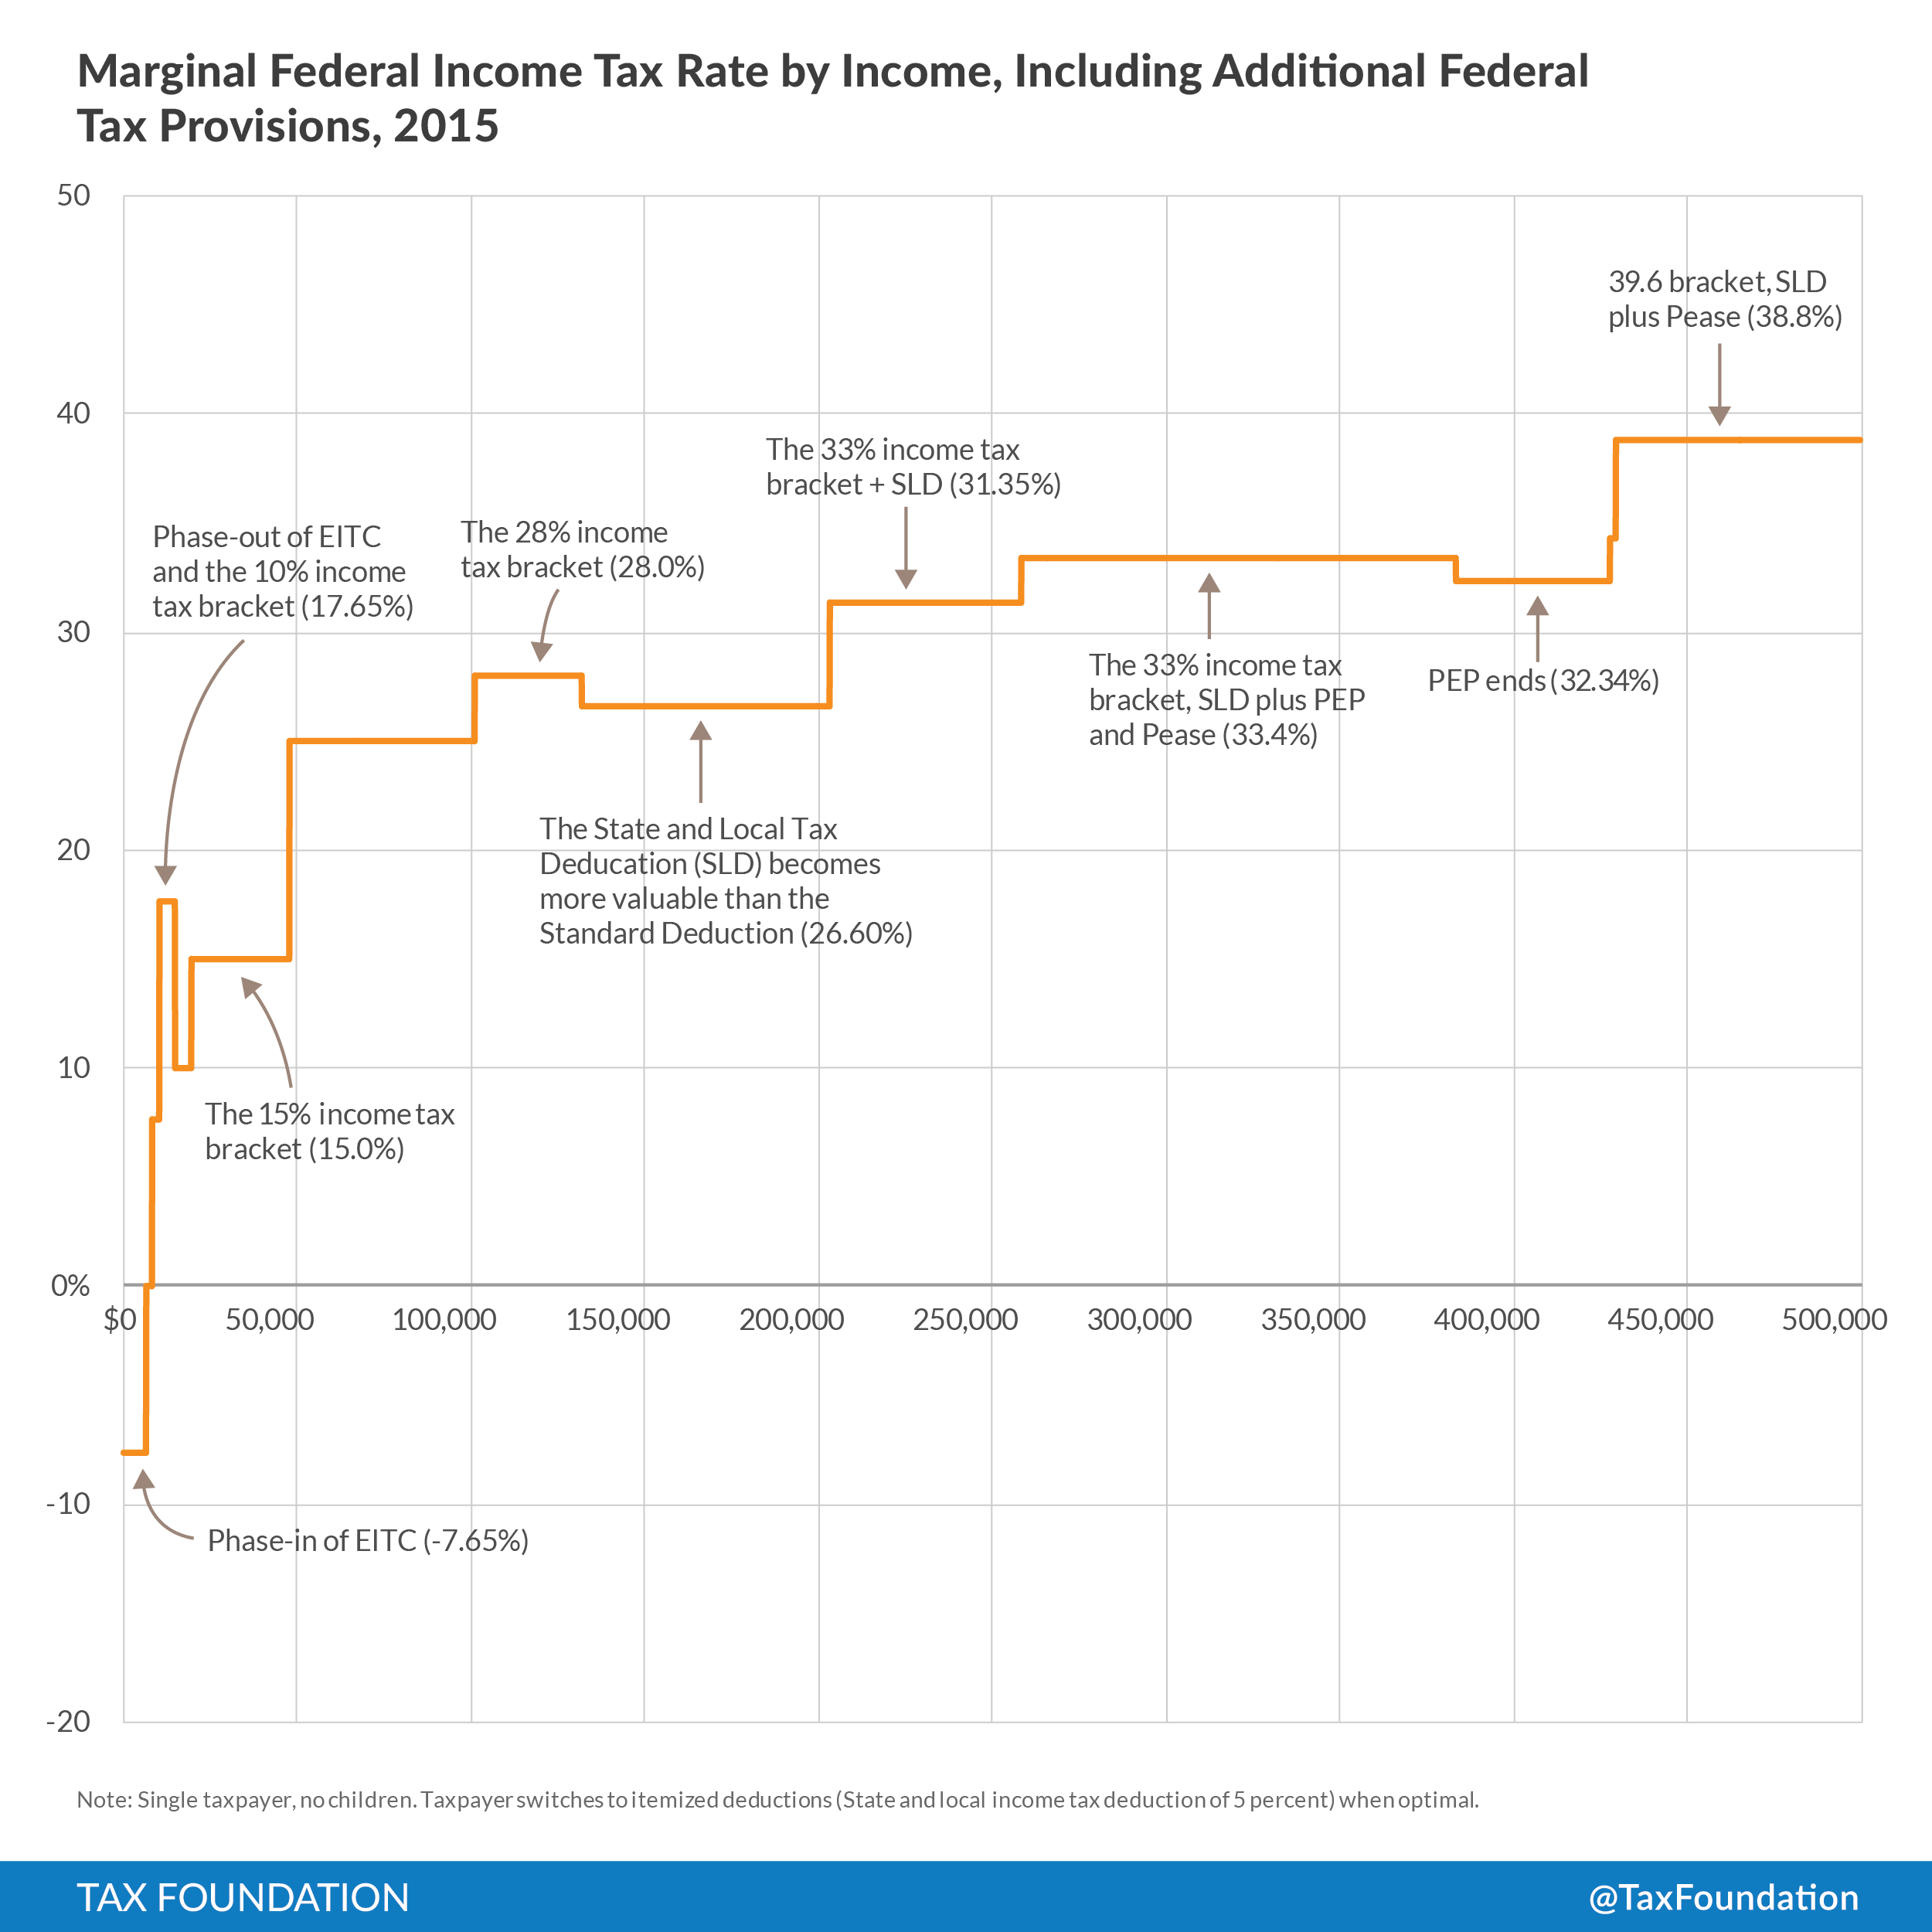 Tax Day 2017 Top Federal Tax Charts: There Are More Marginal Income Tax Rates Than Advertised